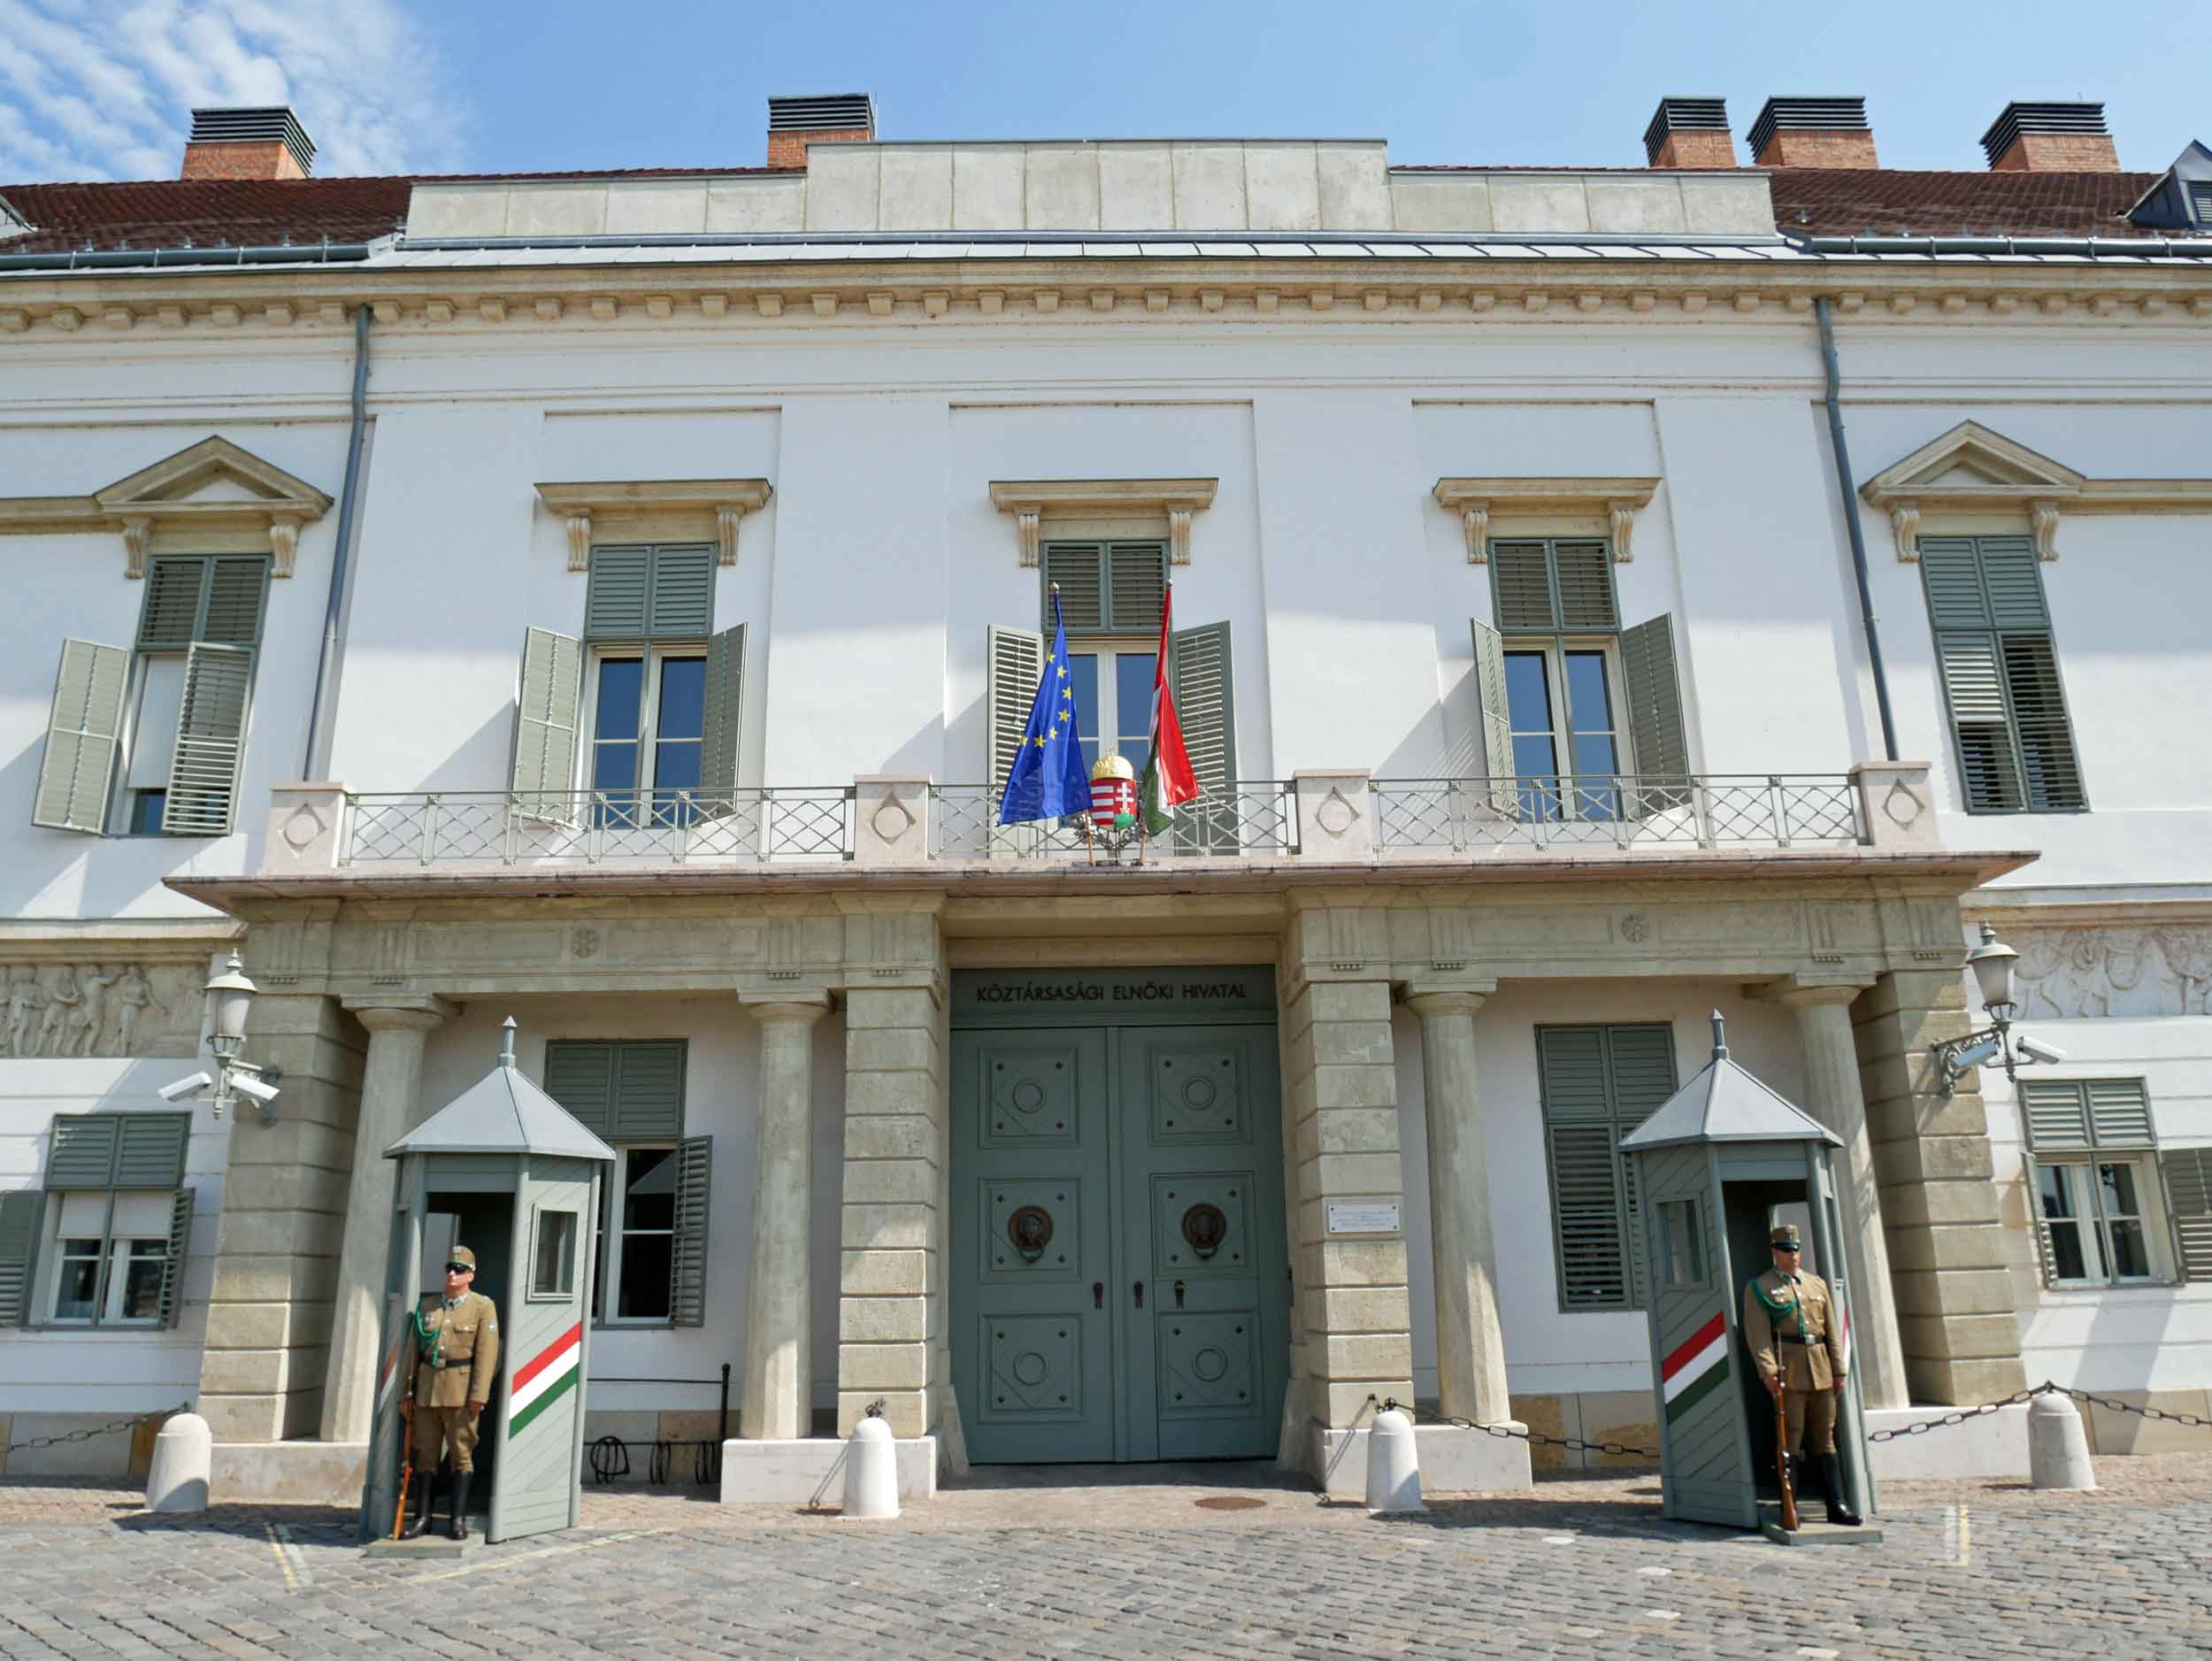 Sandor Palace, just north of Buda Castle, is the official (and more modest)residence of the President of Hungary.